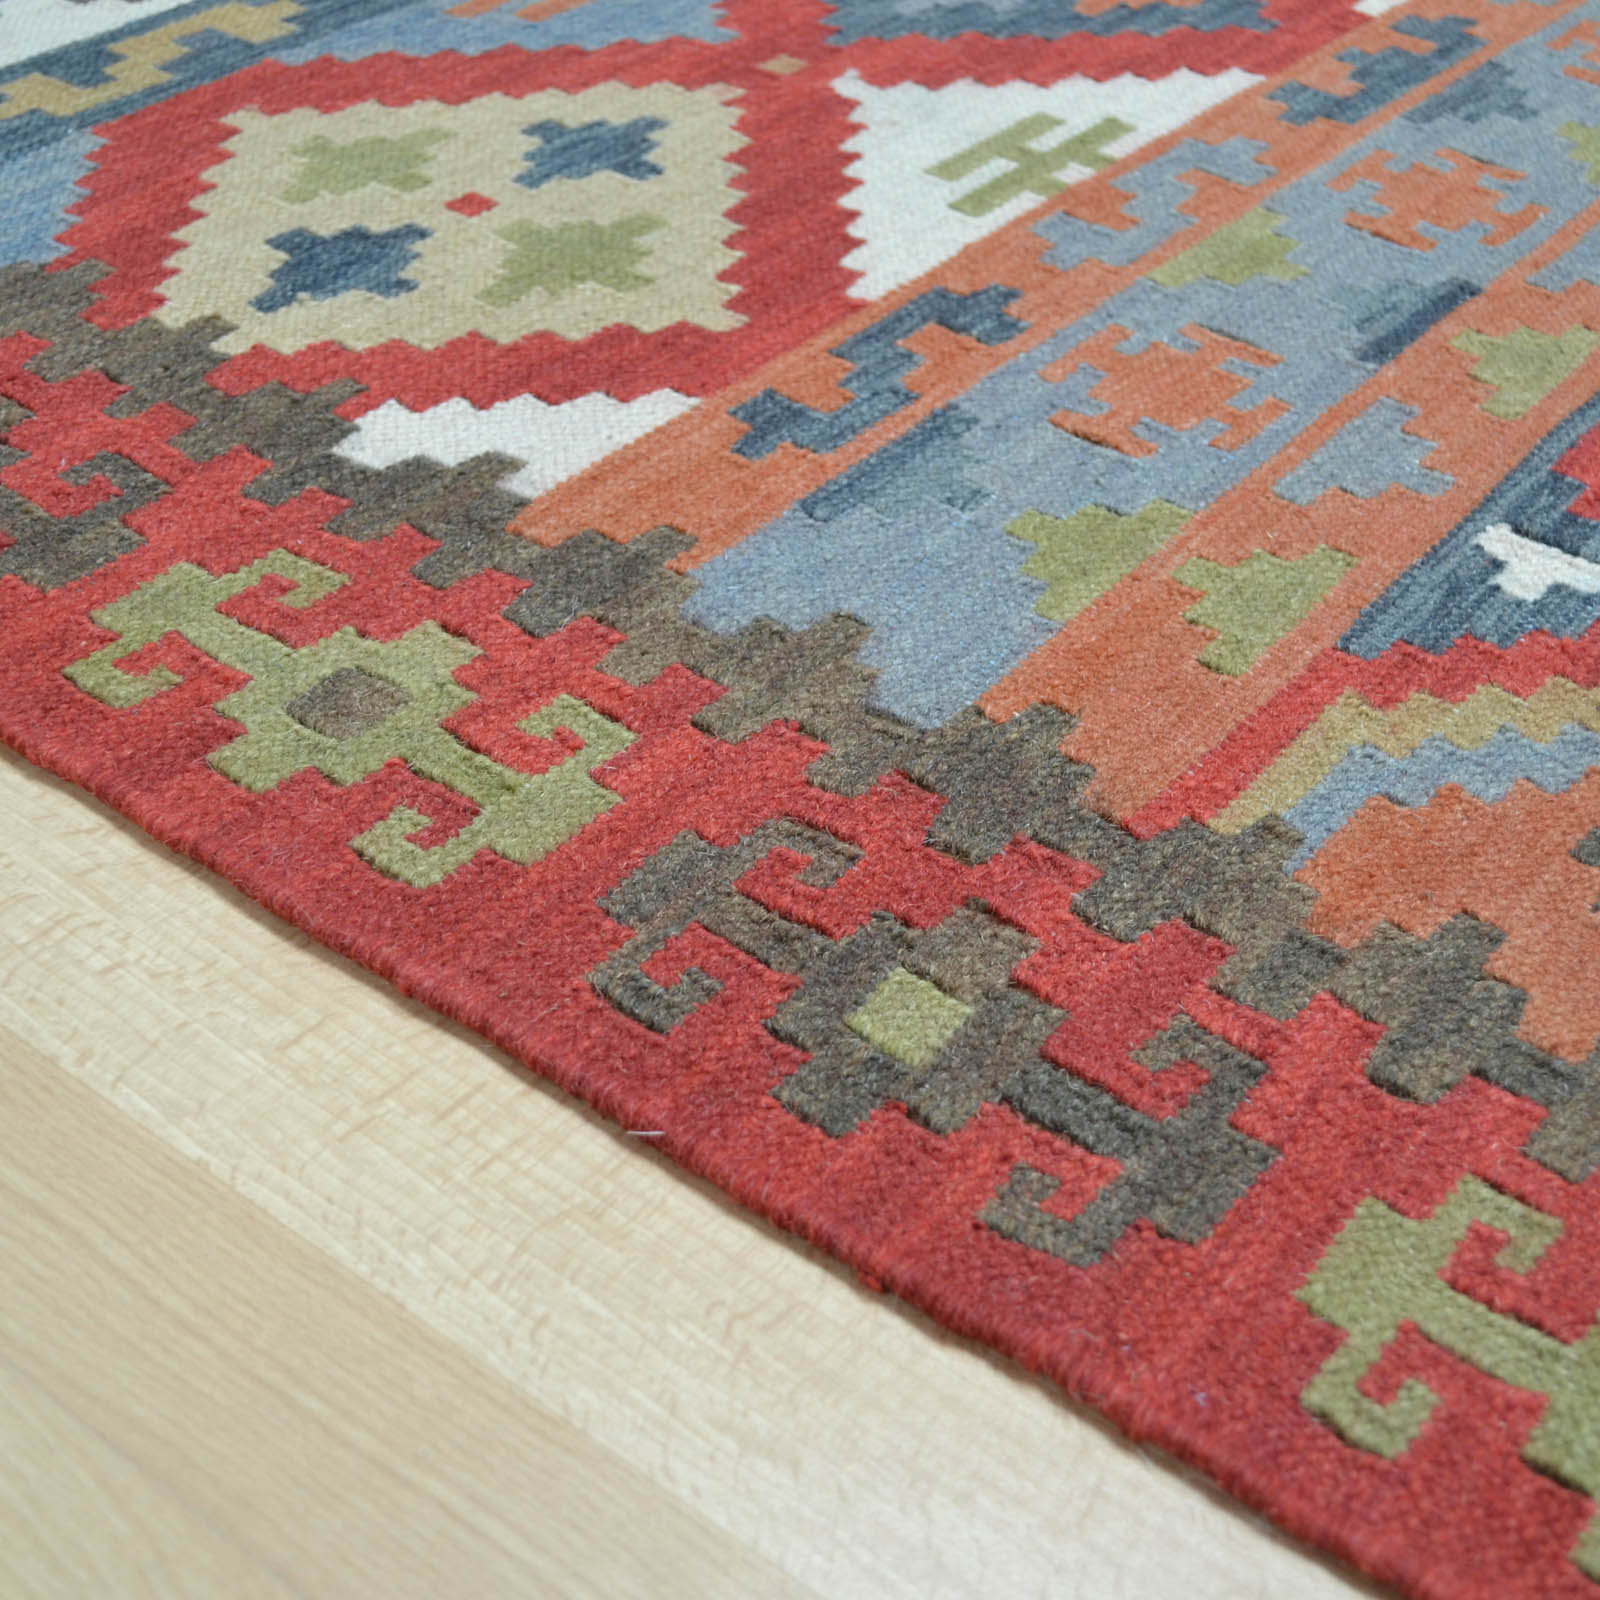 Hippie Kelim 01 Rugs. Click To View Other Images: